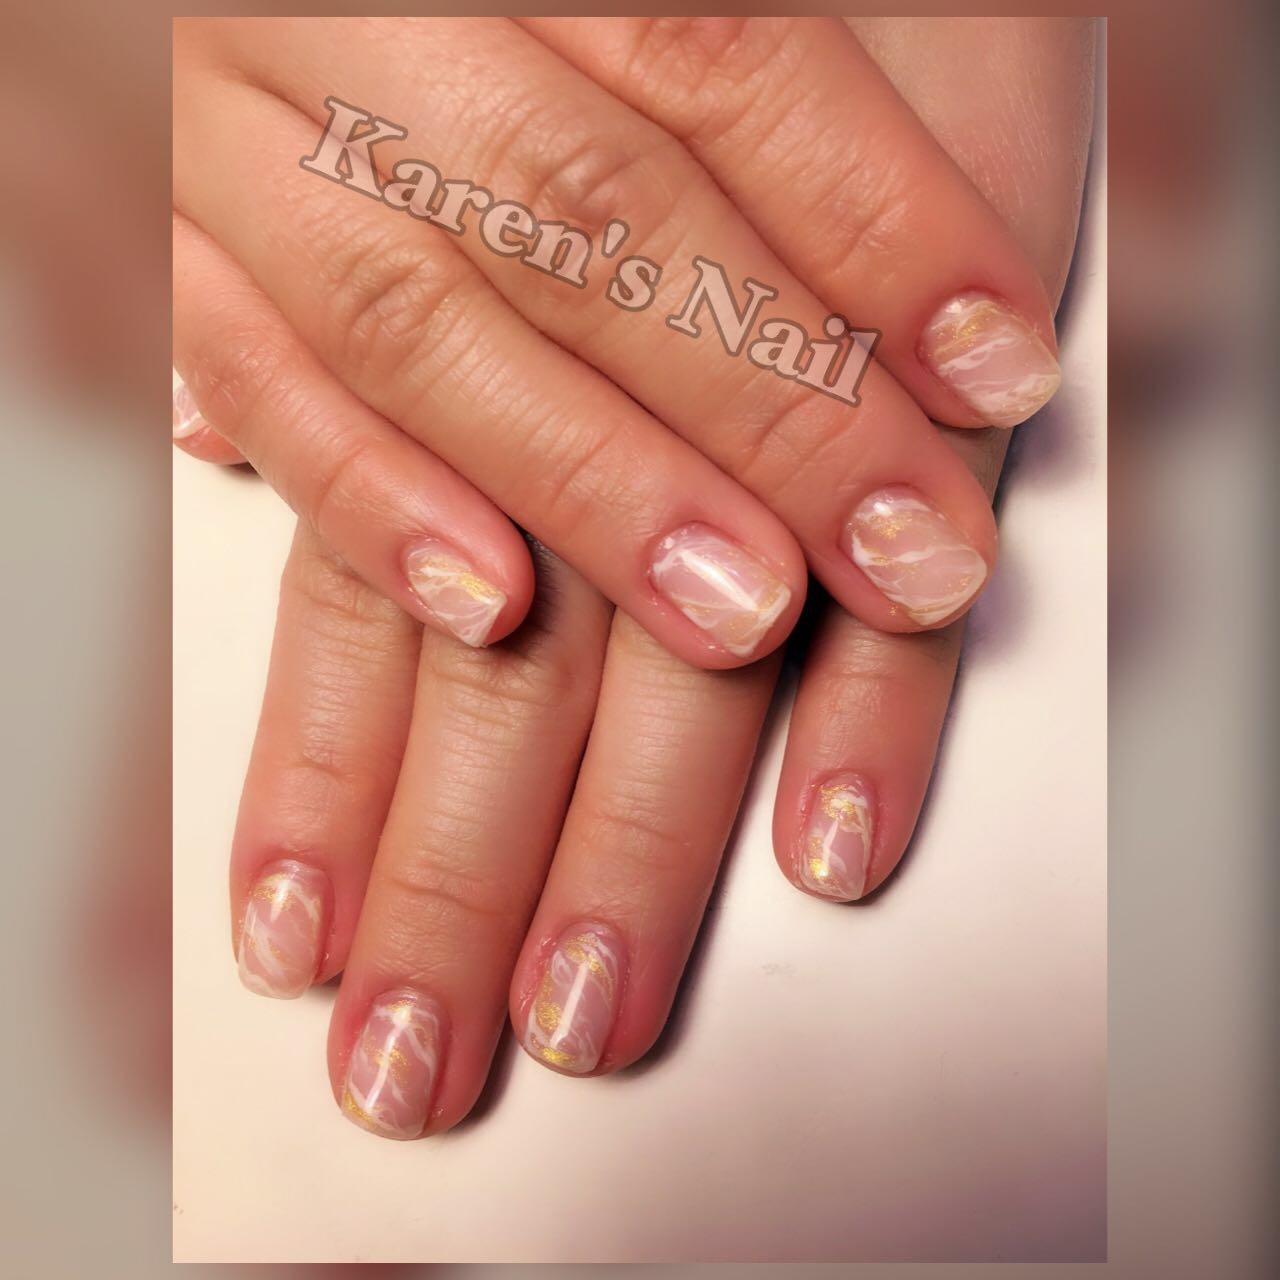 finger,nail,hand,manicure,nail care